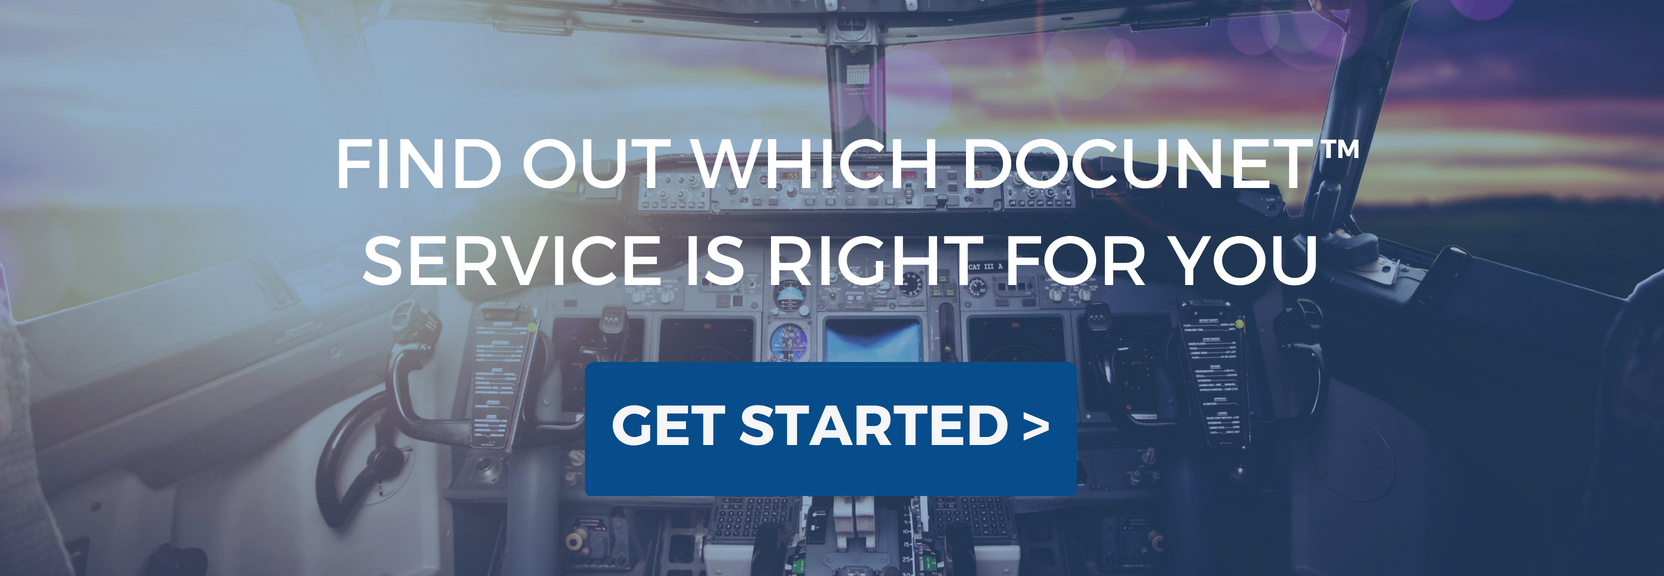 Use the DocuNet calculator to find out which service is right for your airline